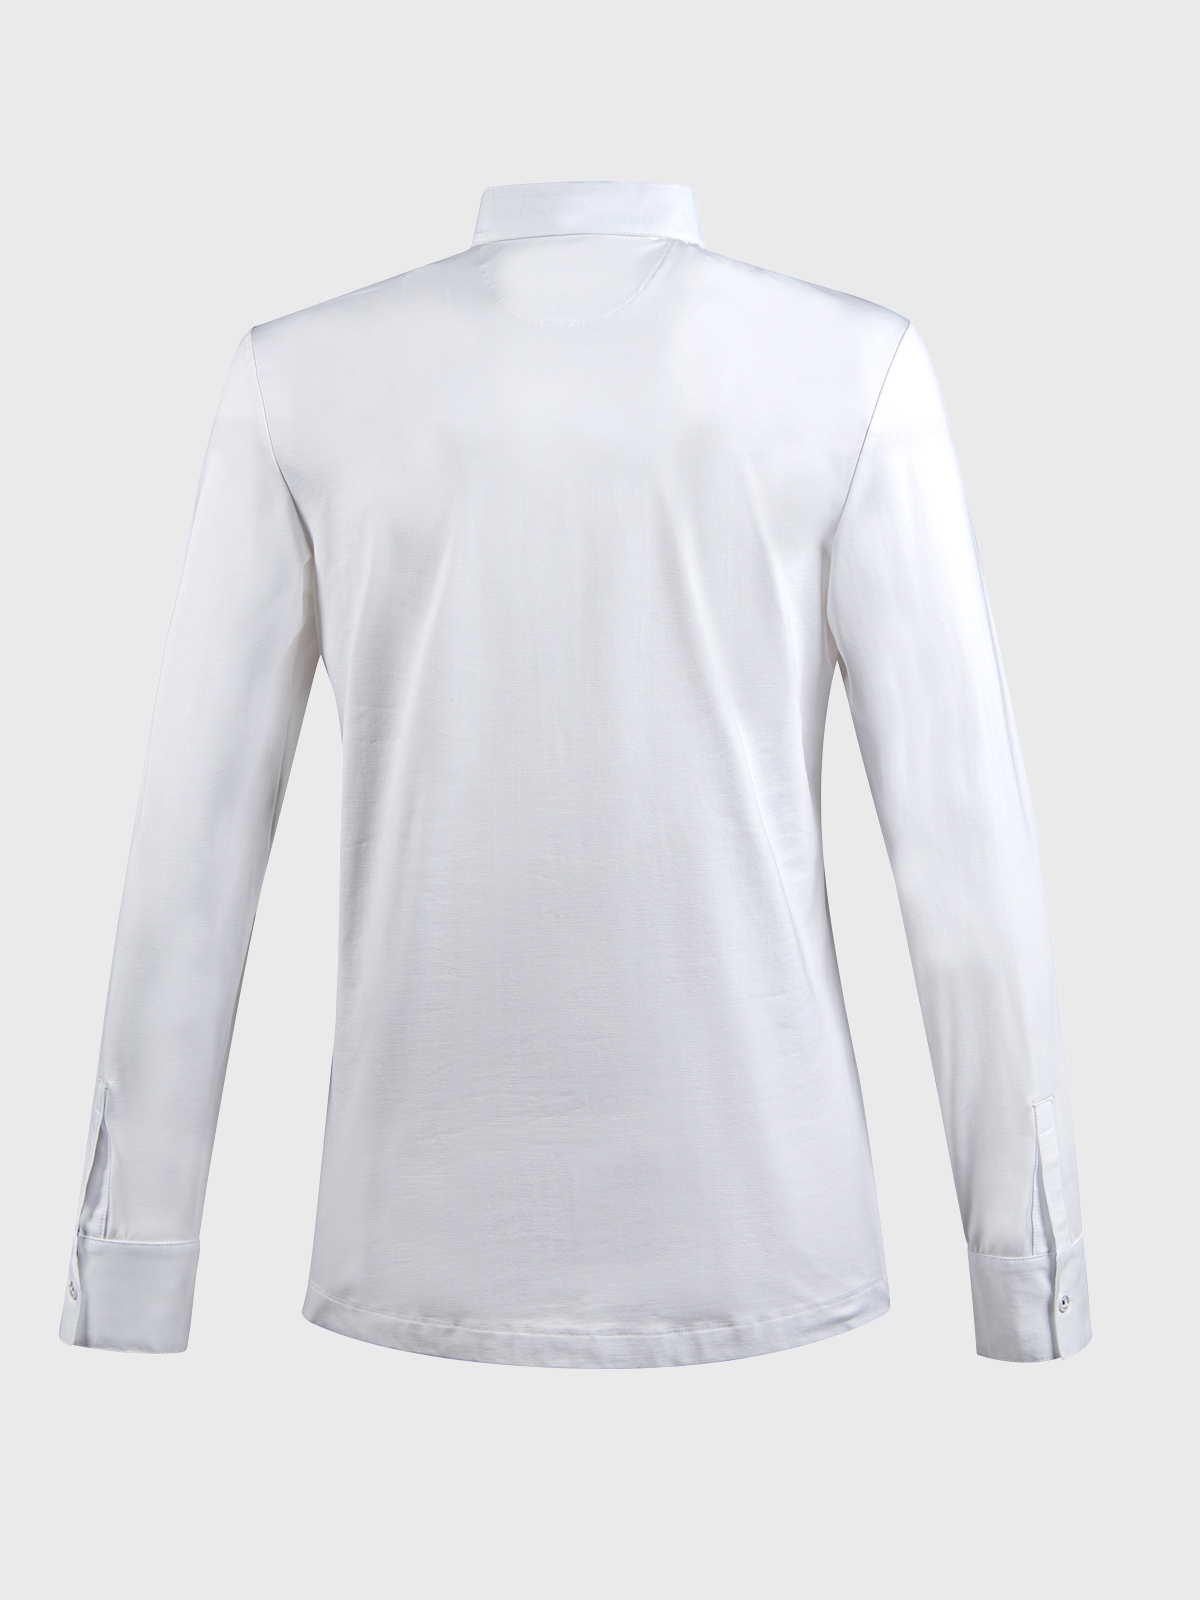 EQODE MEN'S LONG SLEEVE SHOW SHIRT 2